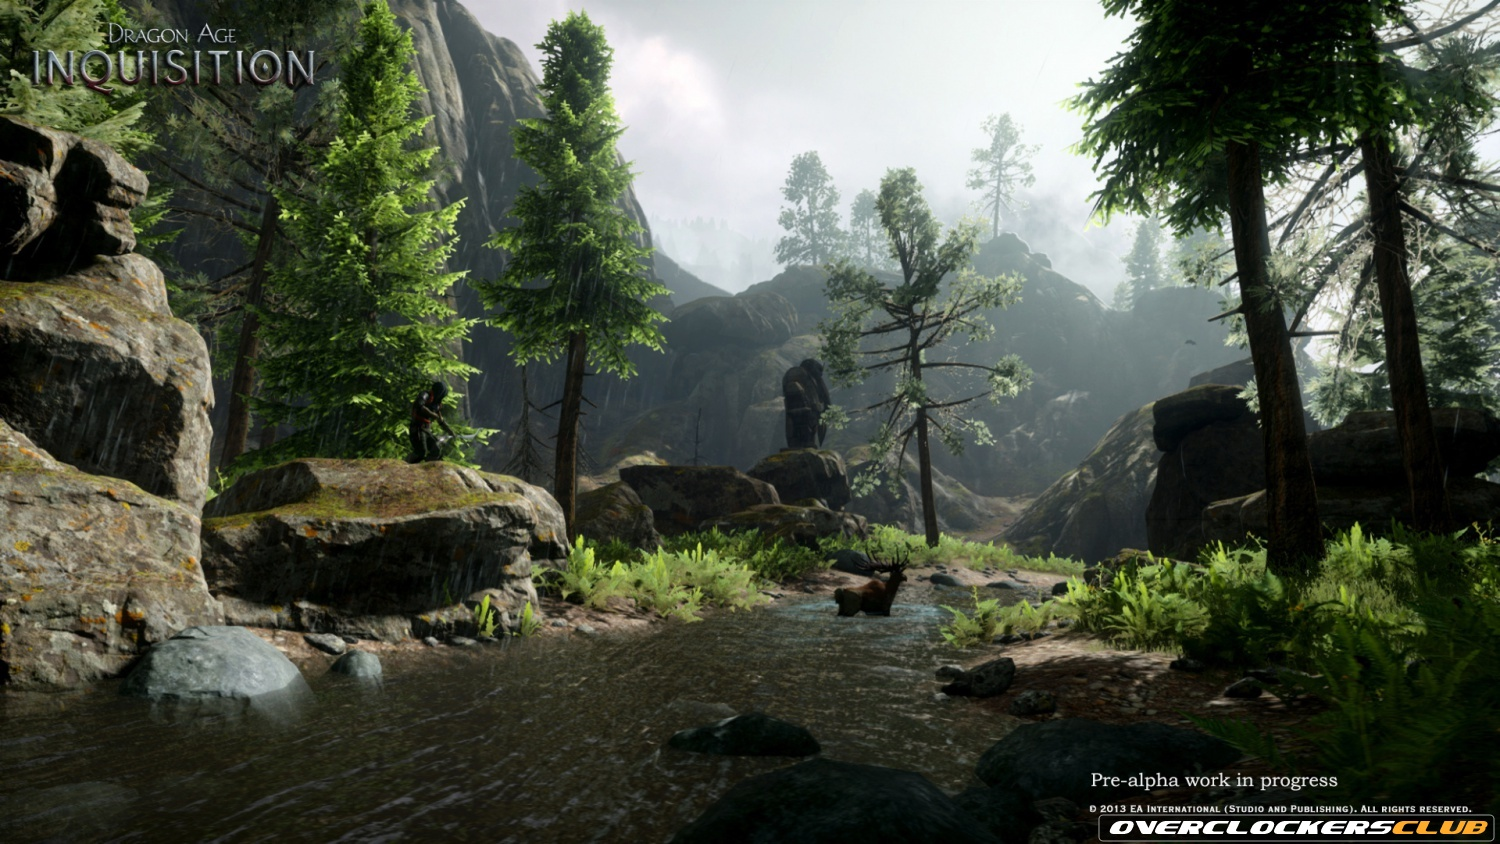 Discover the Dragon Age in a New Dragon Age: Inquisition Video